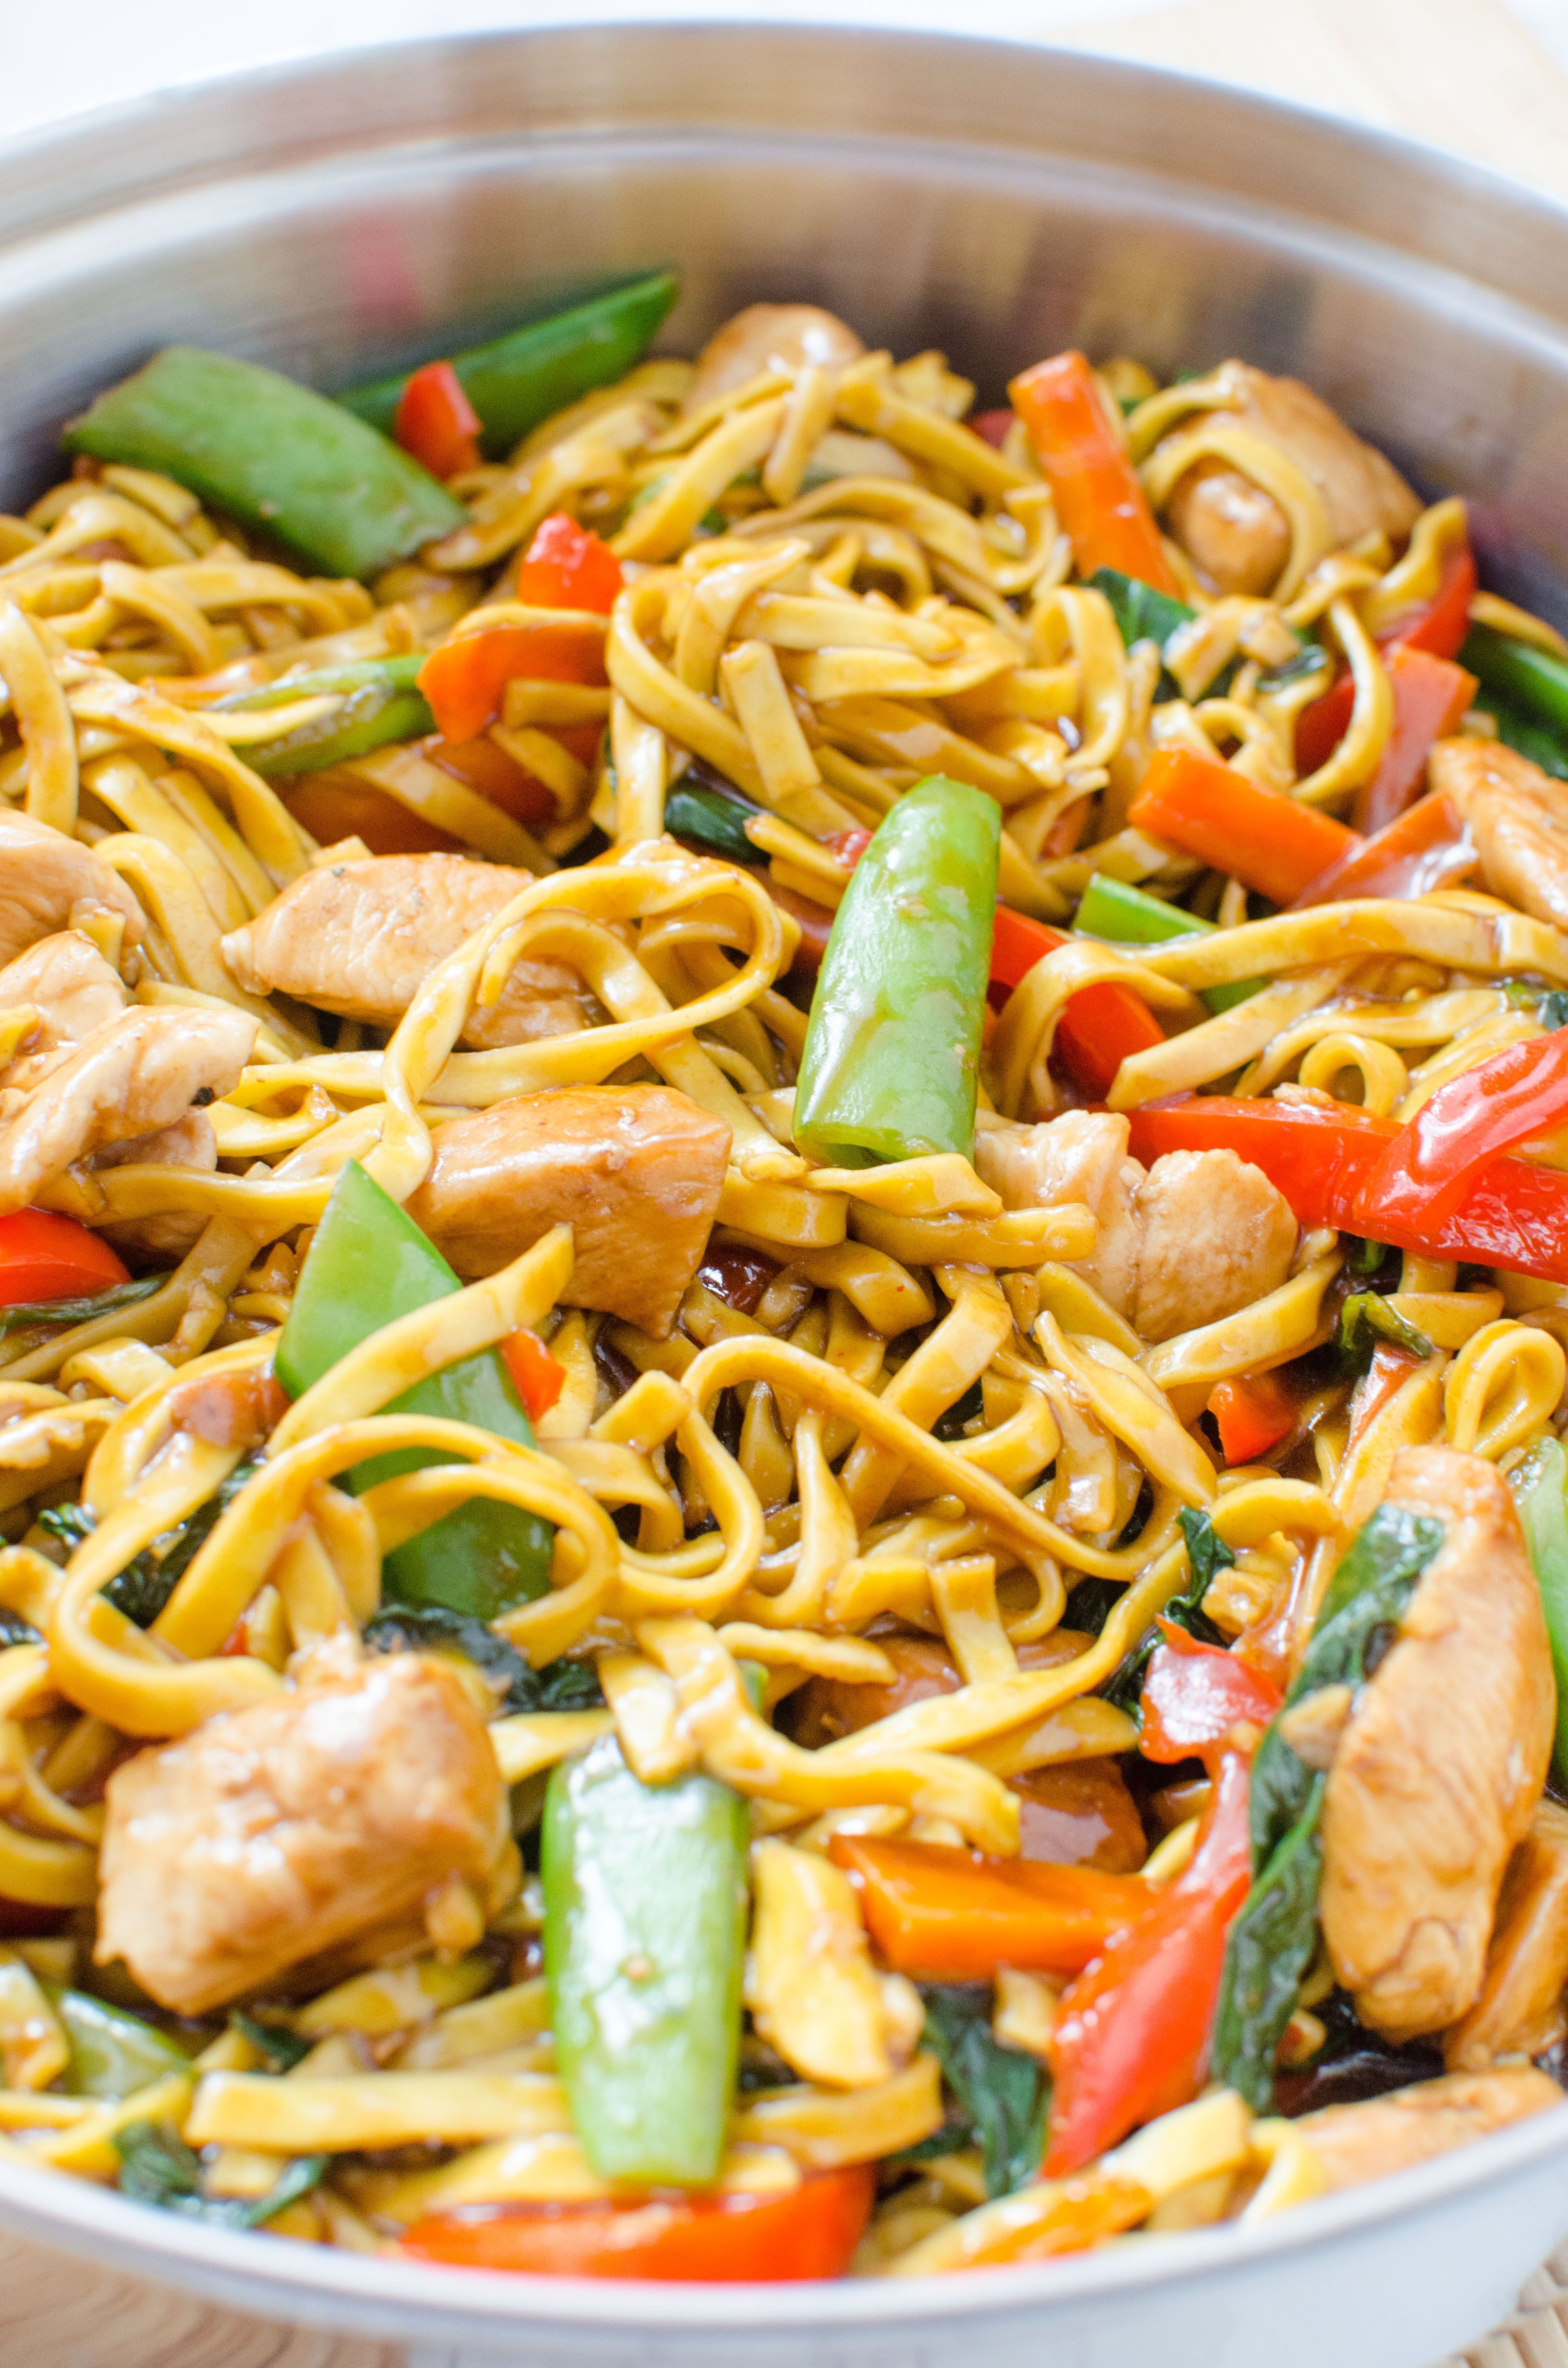 Chicken Lo Mein Homemade Takeout Style Recipe (With